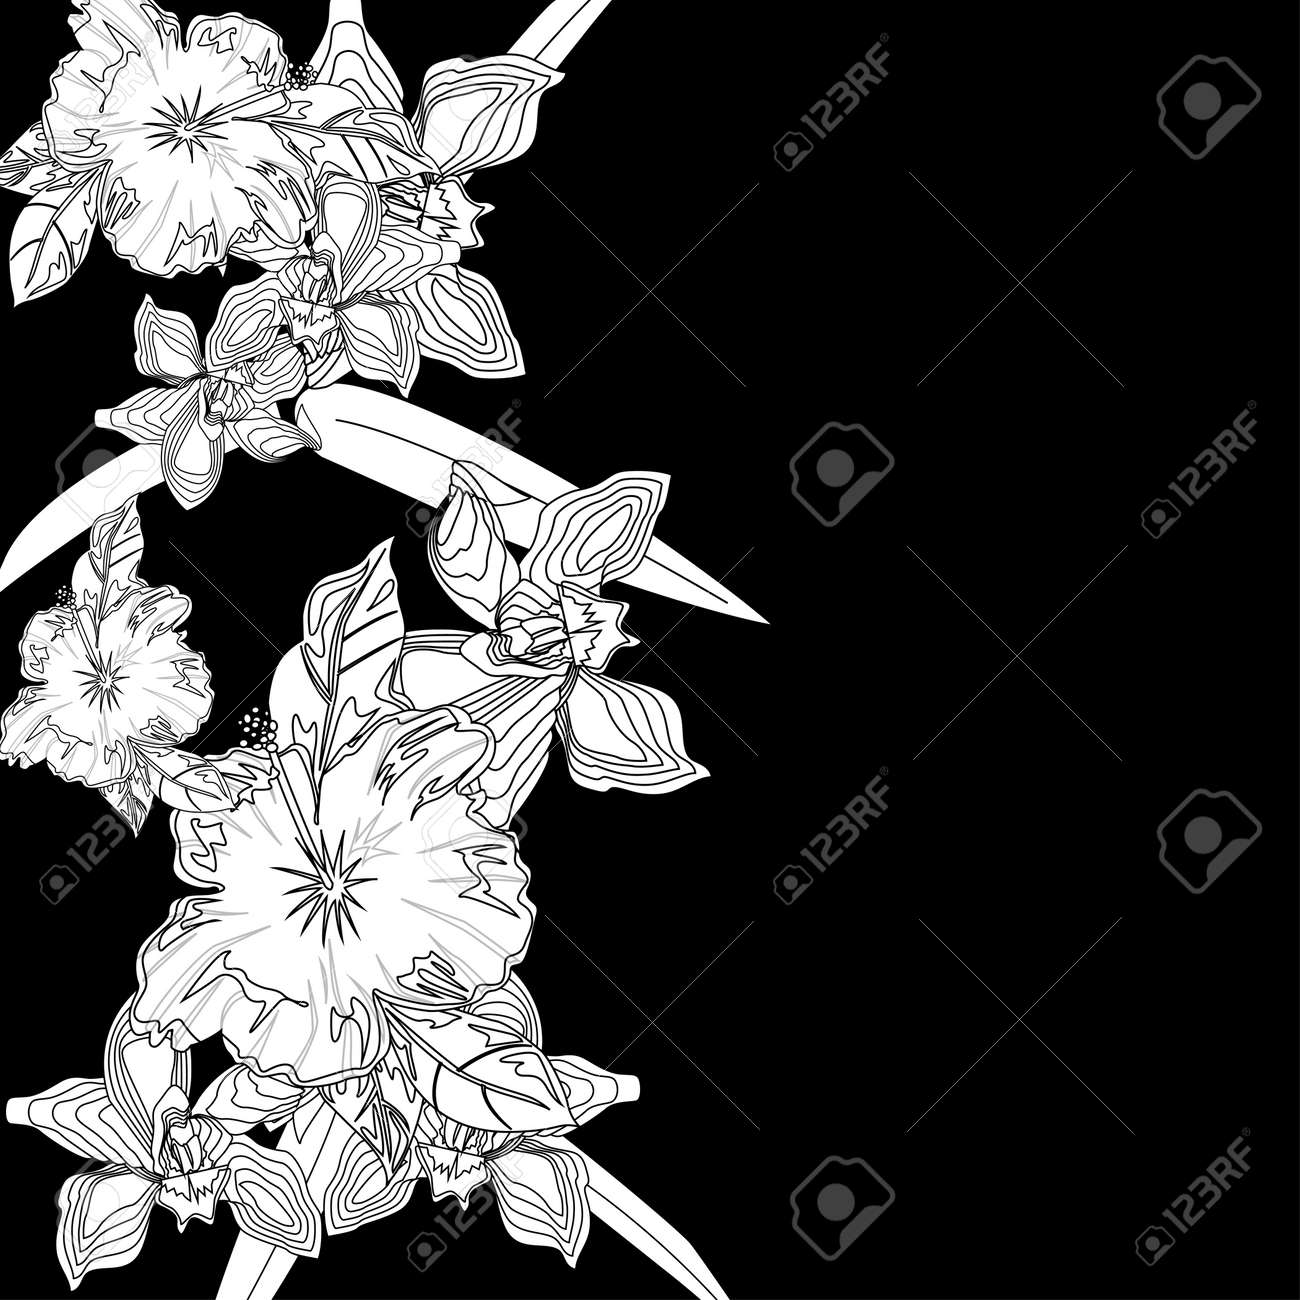 Black and white background with white flowers royalty free black and white background with white flowers stok fotoraf 19534685 mightylinksfo